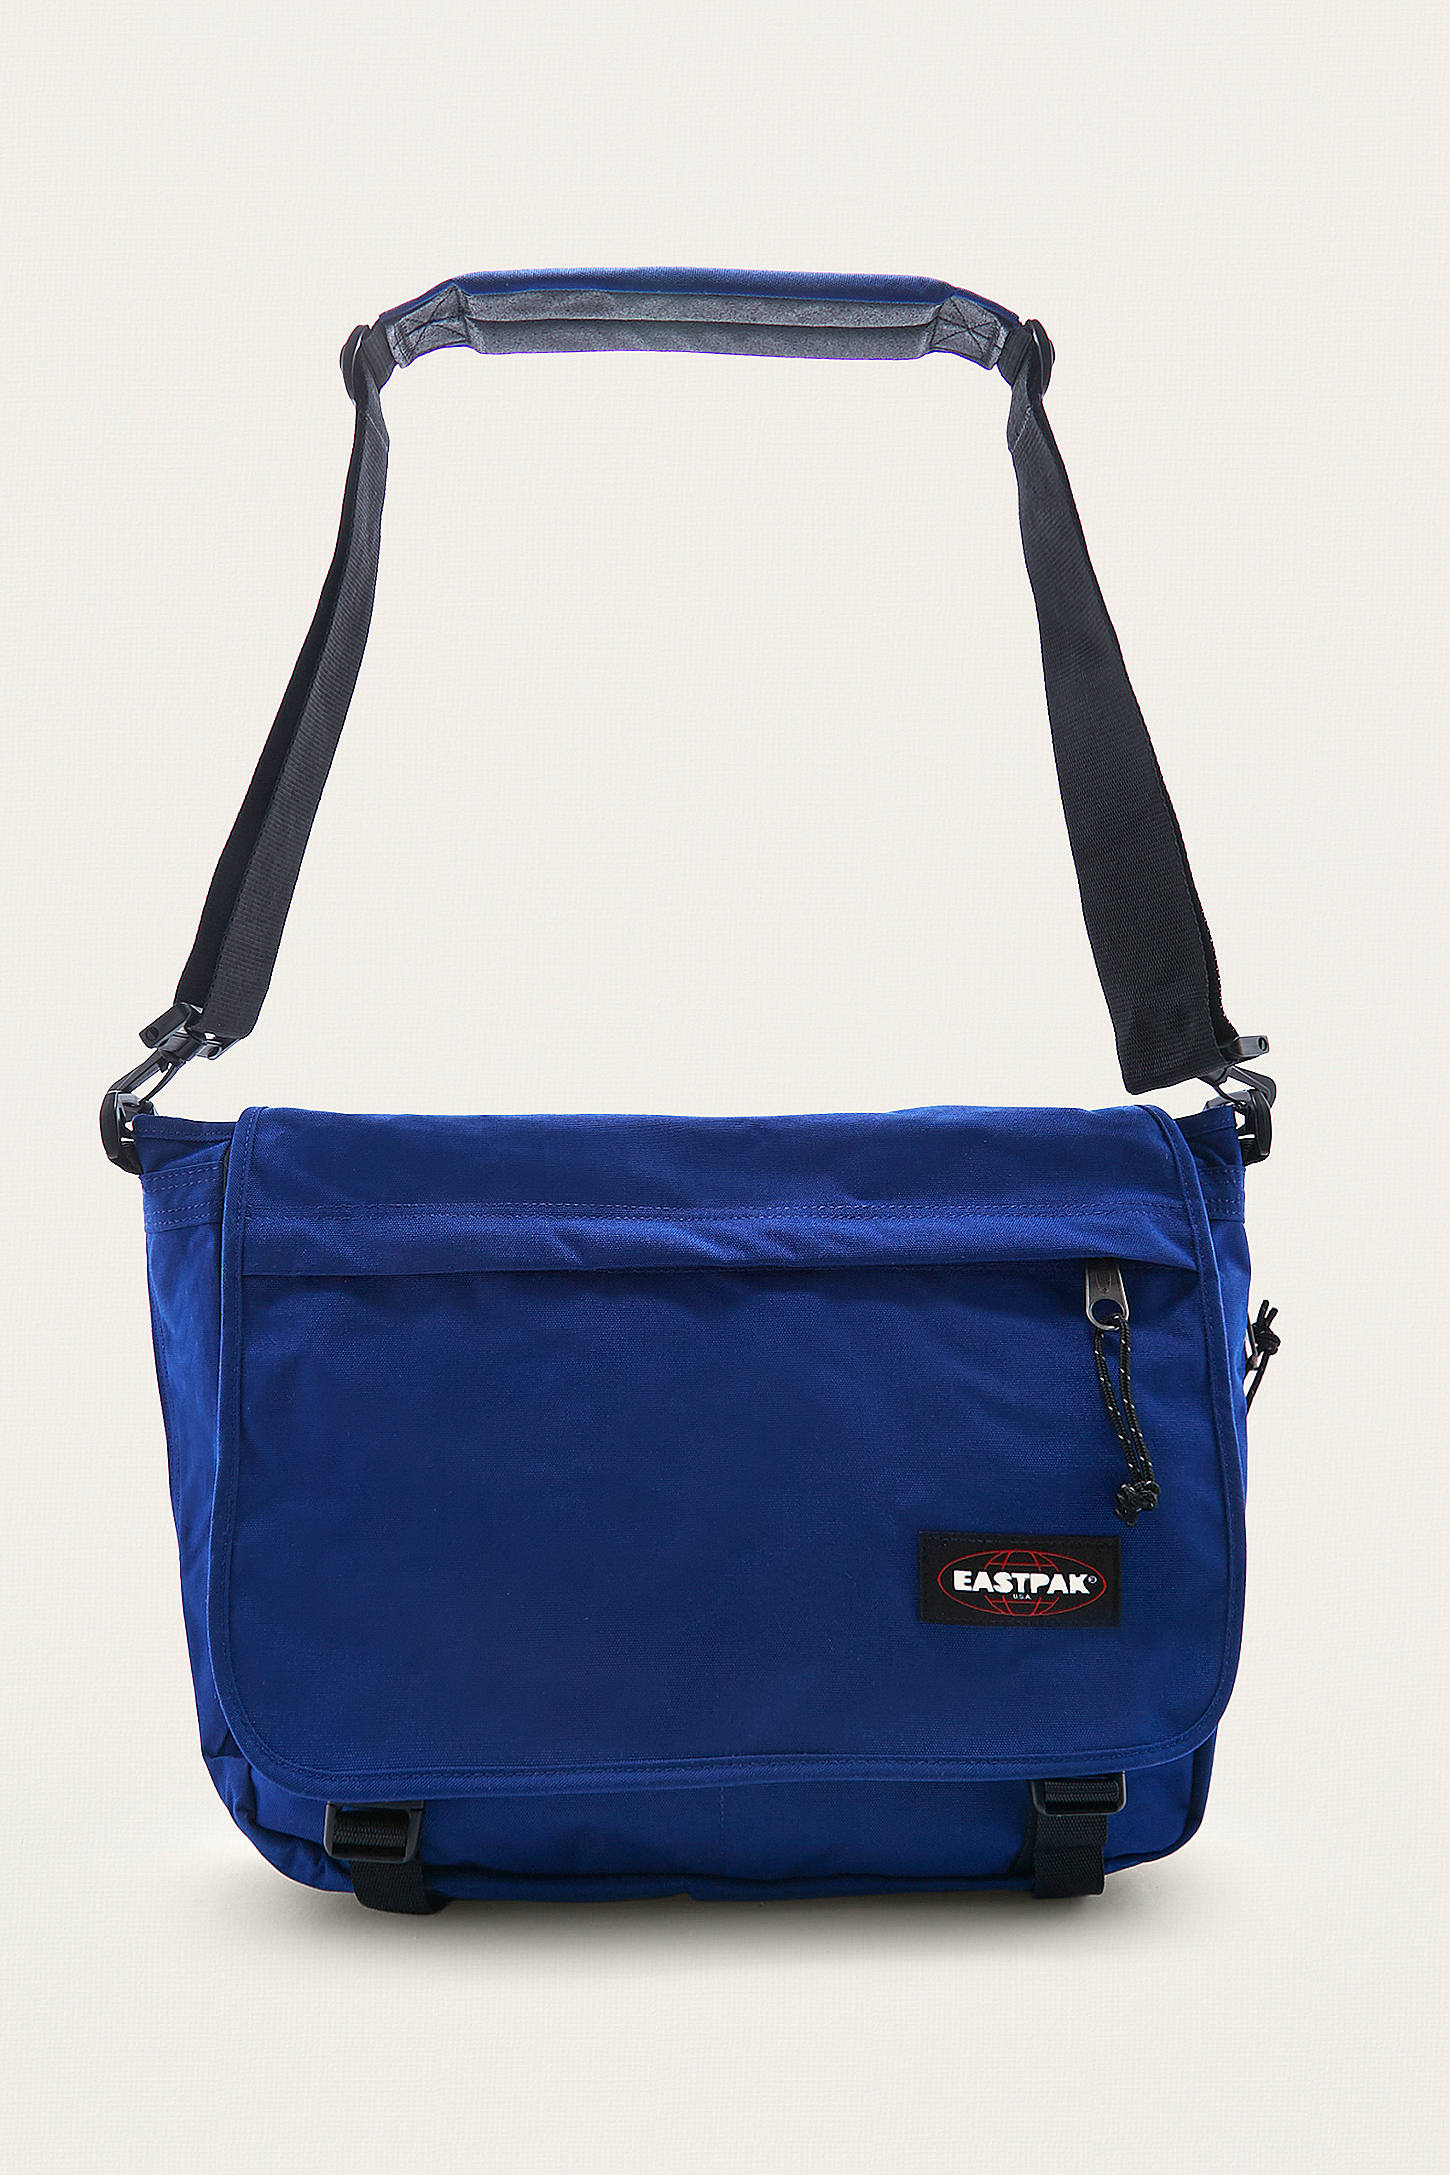 Eastpak Delegate Bonded Blue Messenger Bag | Urban Outfitters